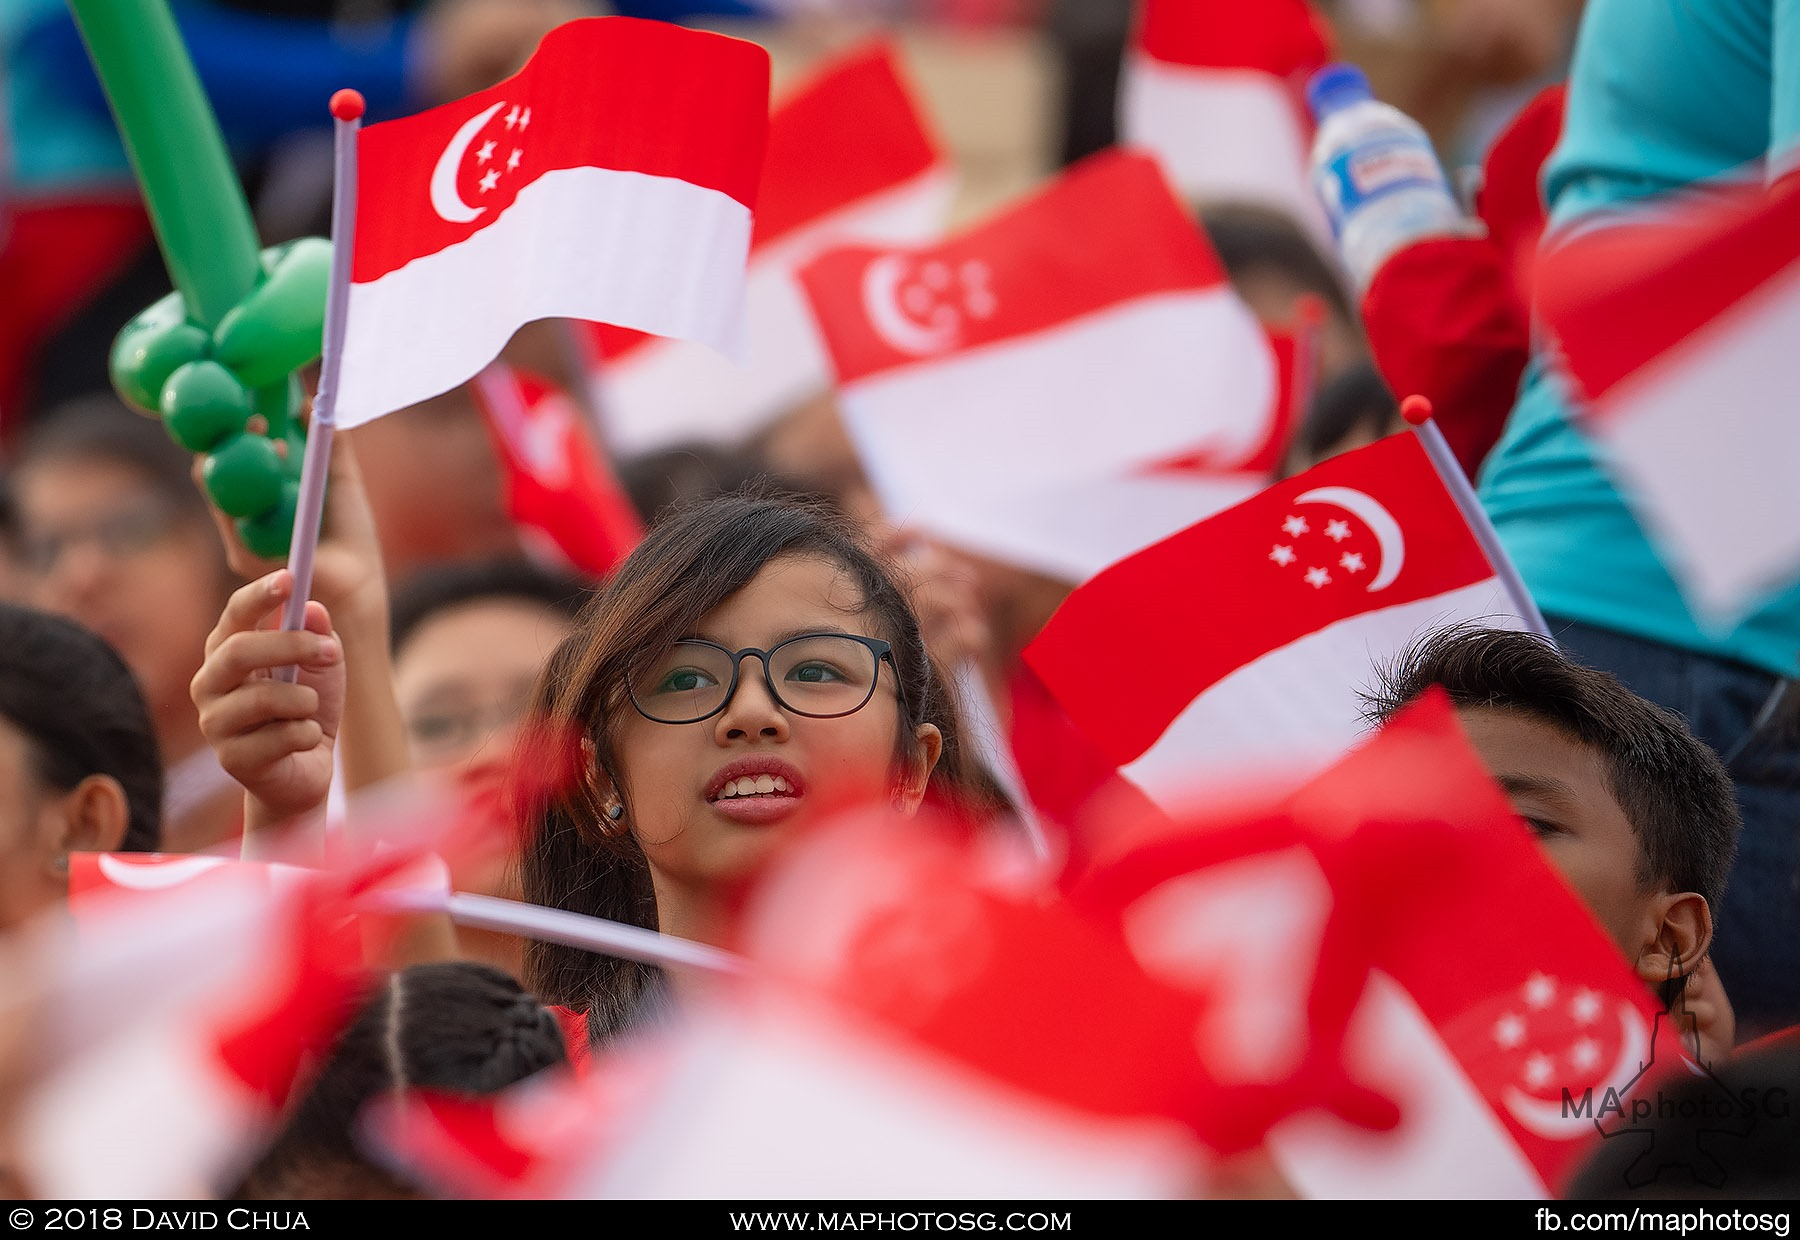 01. A girl waves the Singapore Flag amidst a sea of flags.